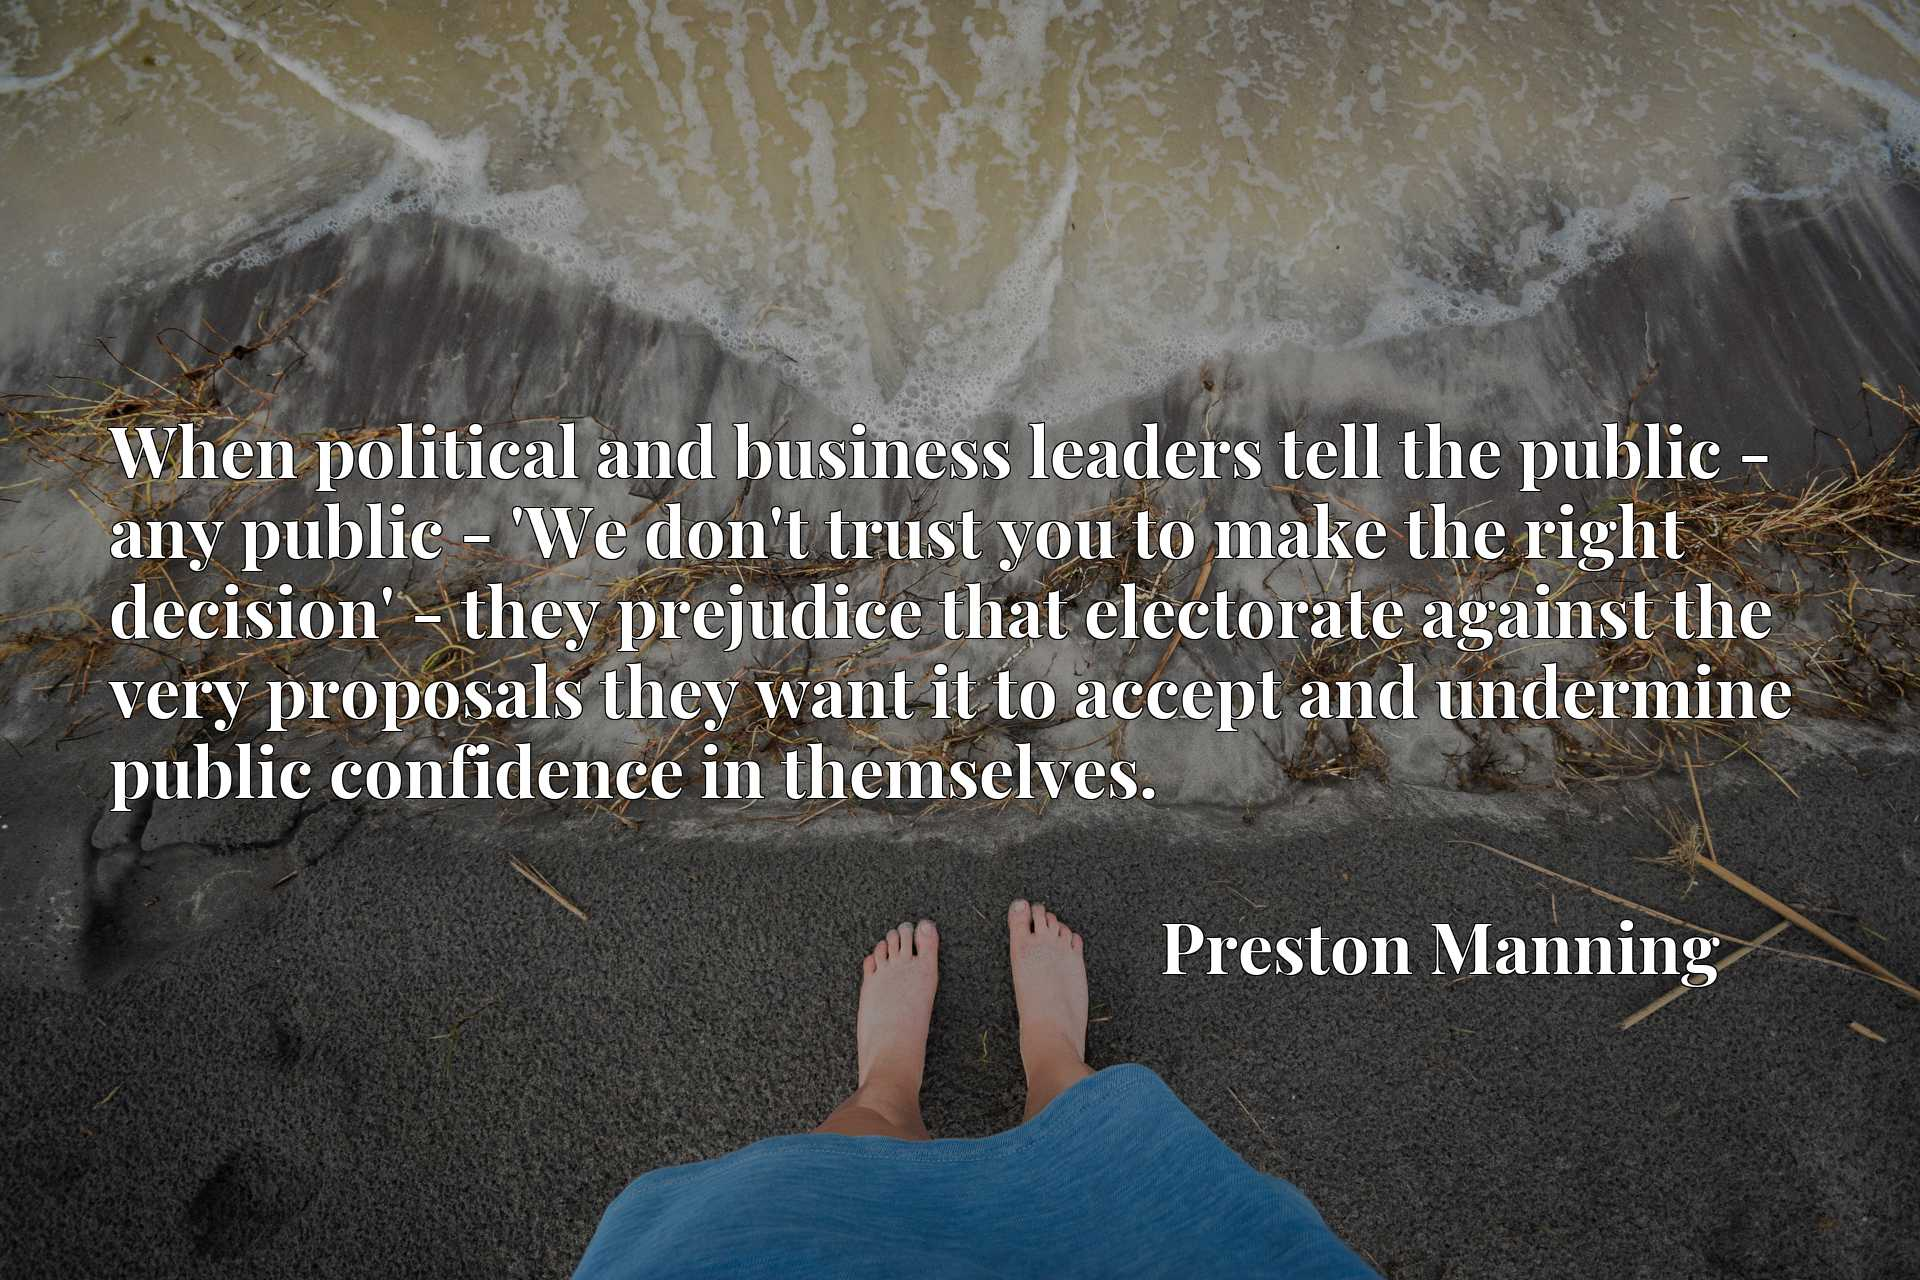 When political and business leaders tell the public - any public - 'We don't trust you to make the right decision' - they prejudice that electorate against the very proposals they want it to accept and undermine public confidence in themselves.